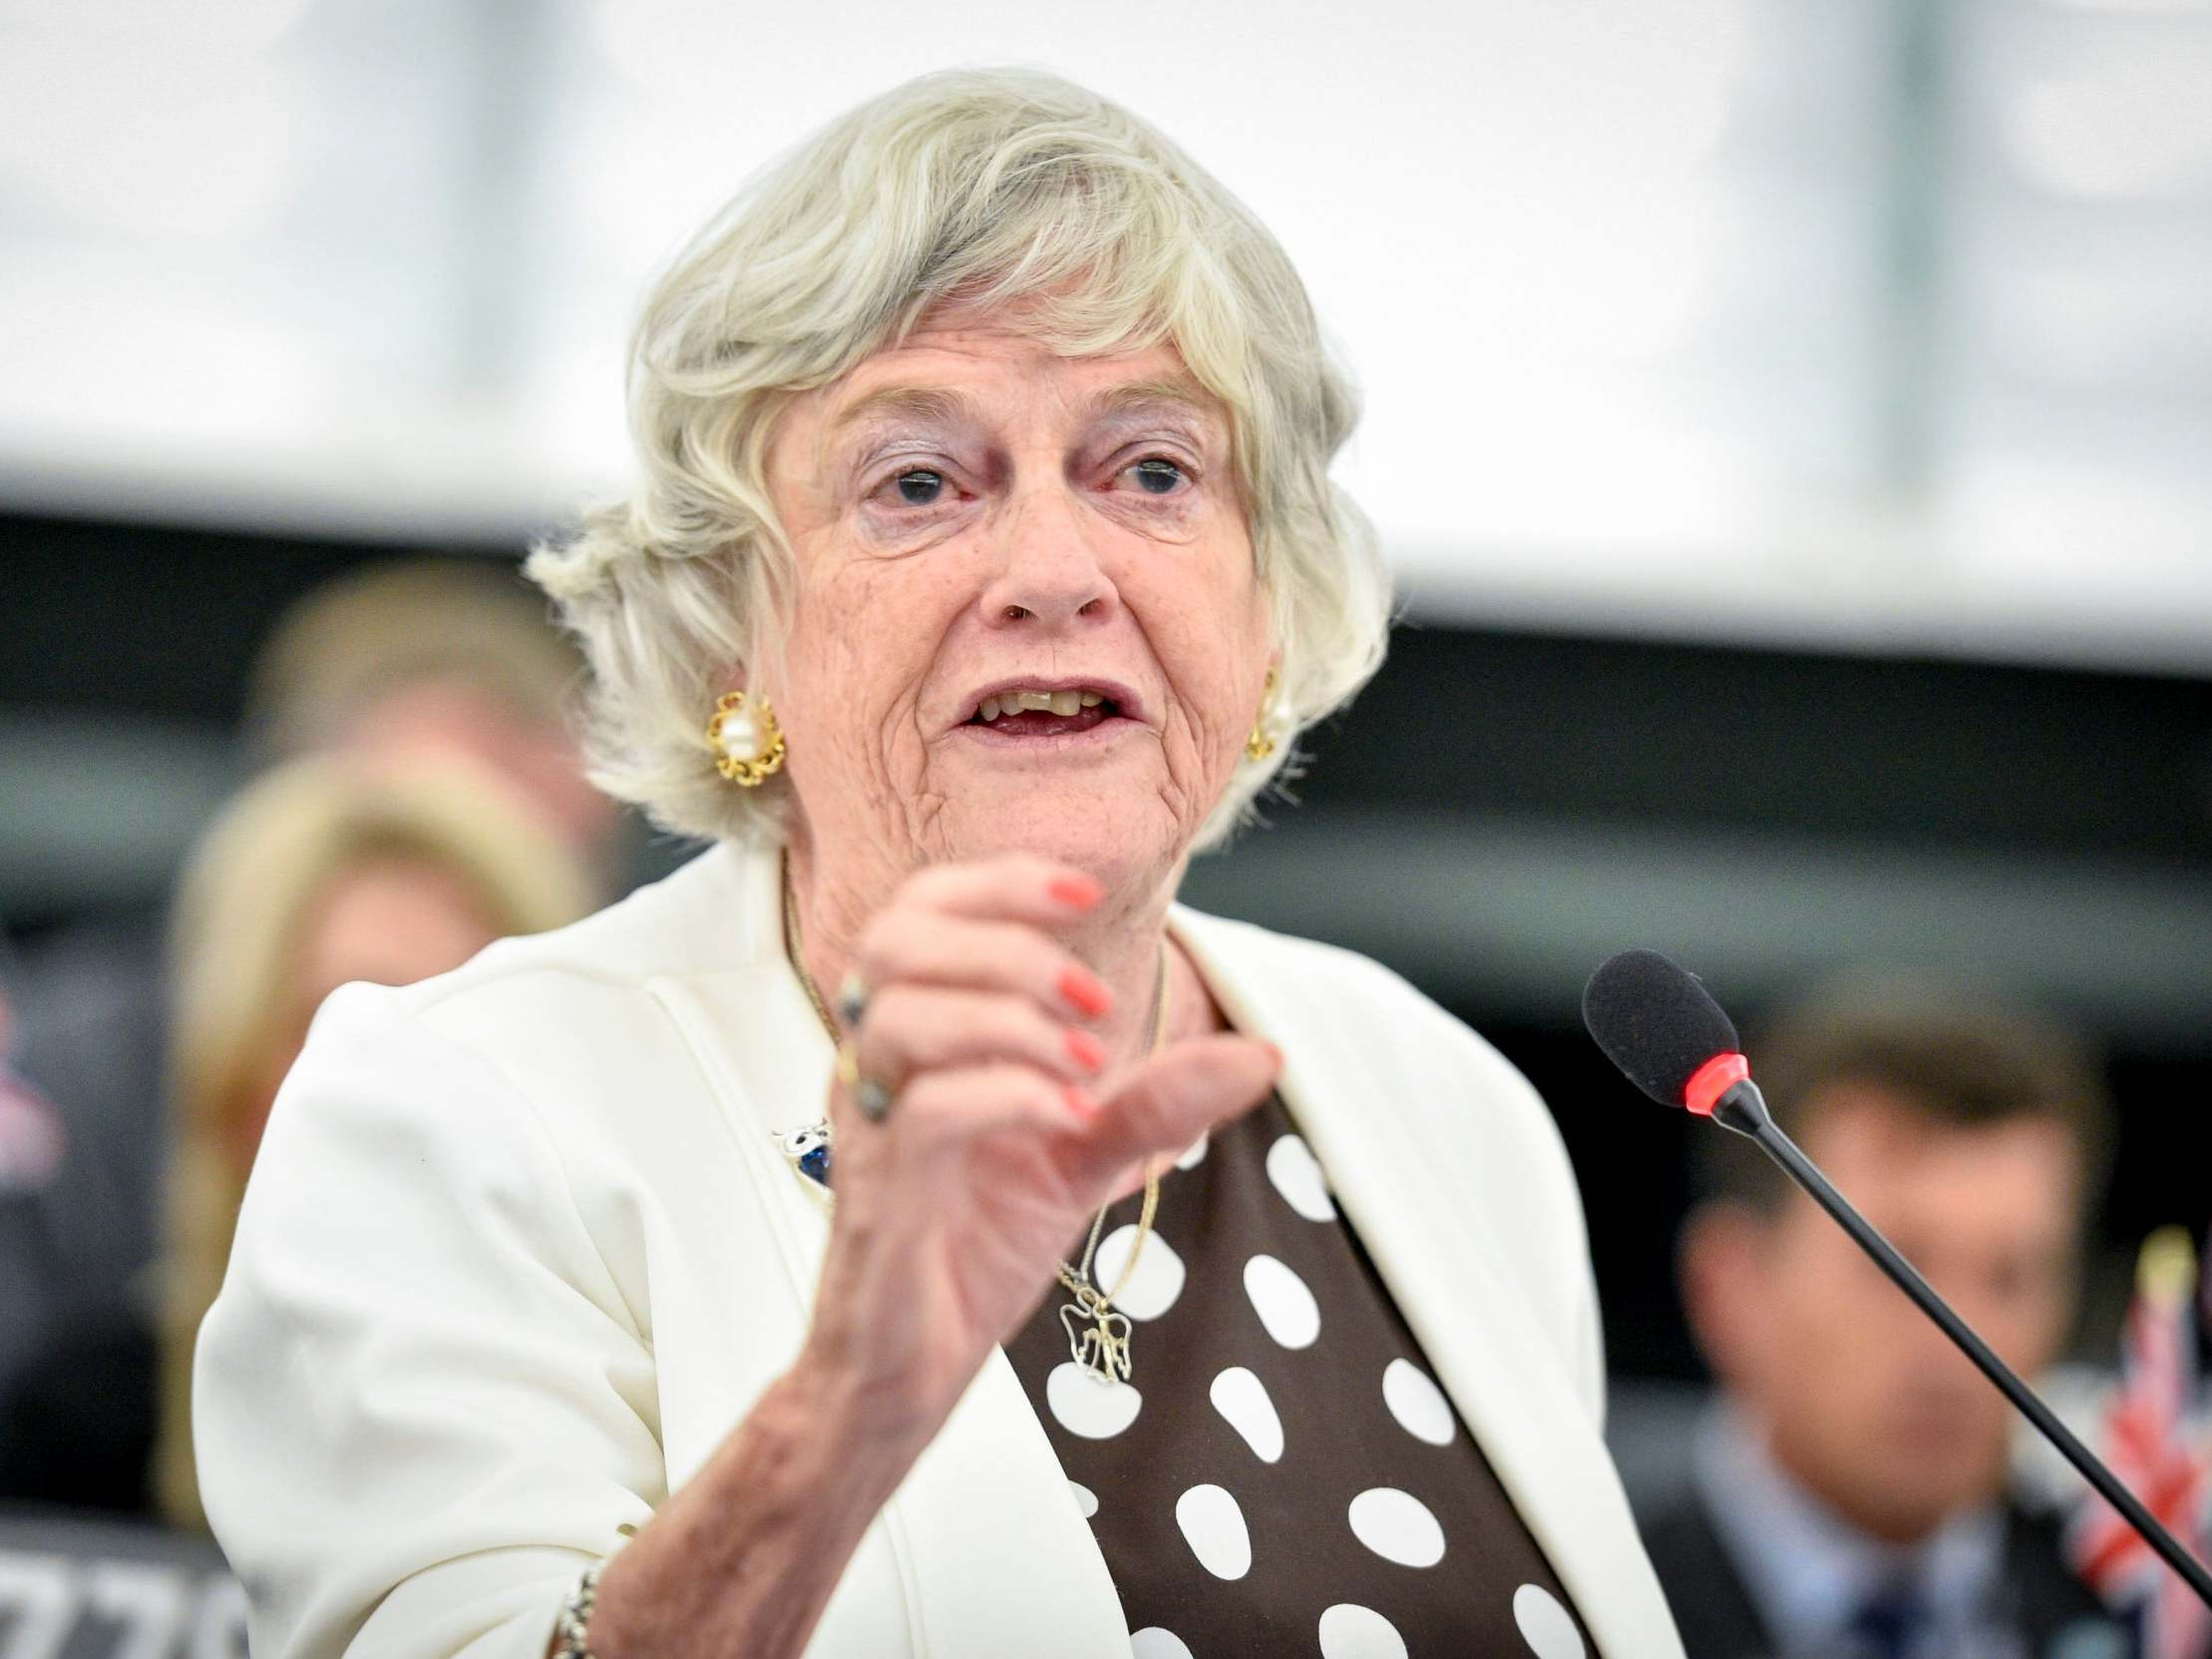 Ann Widdecombe: Fury as MEP compares Brexit to 'slaves rising up against their owners' 6